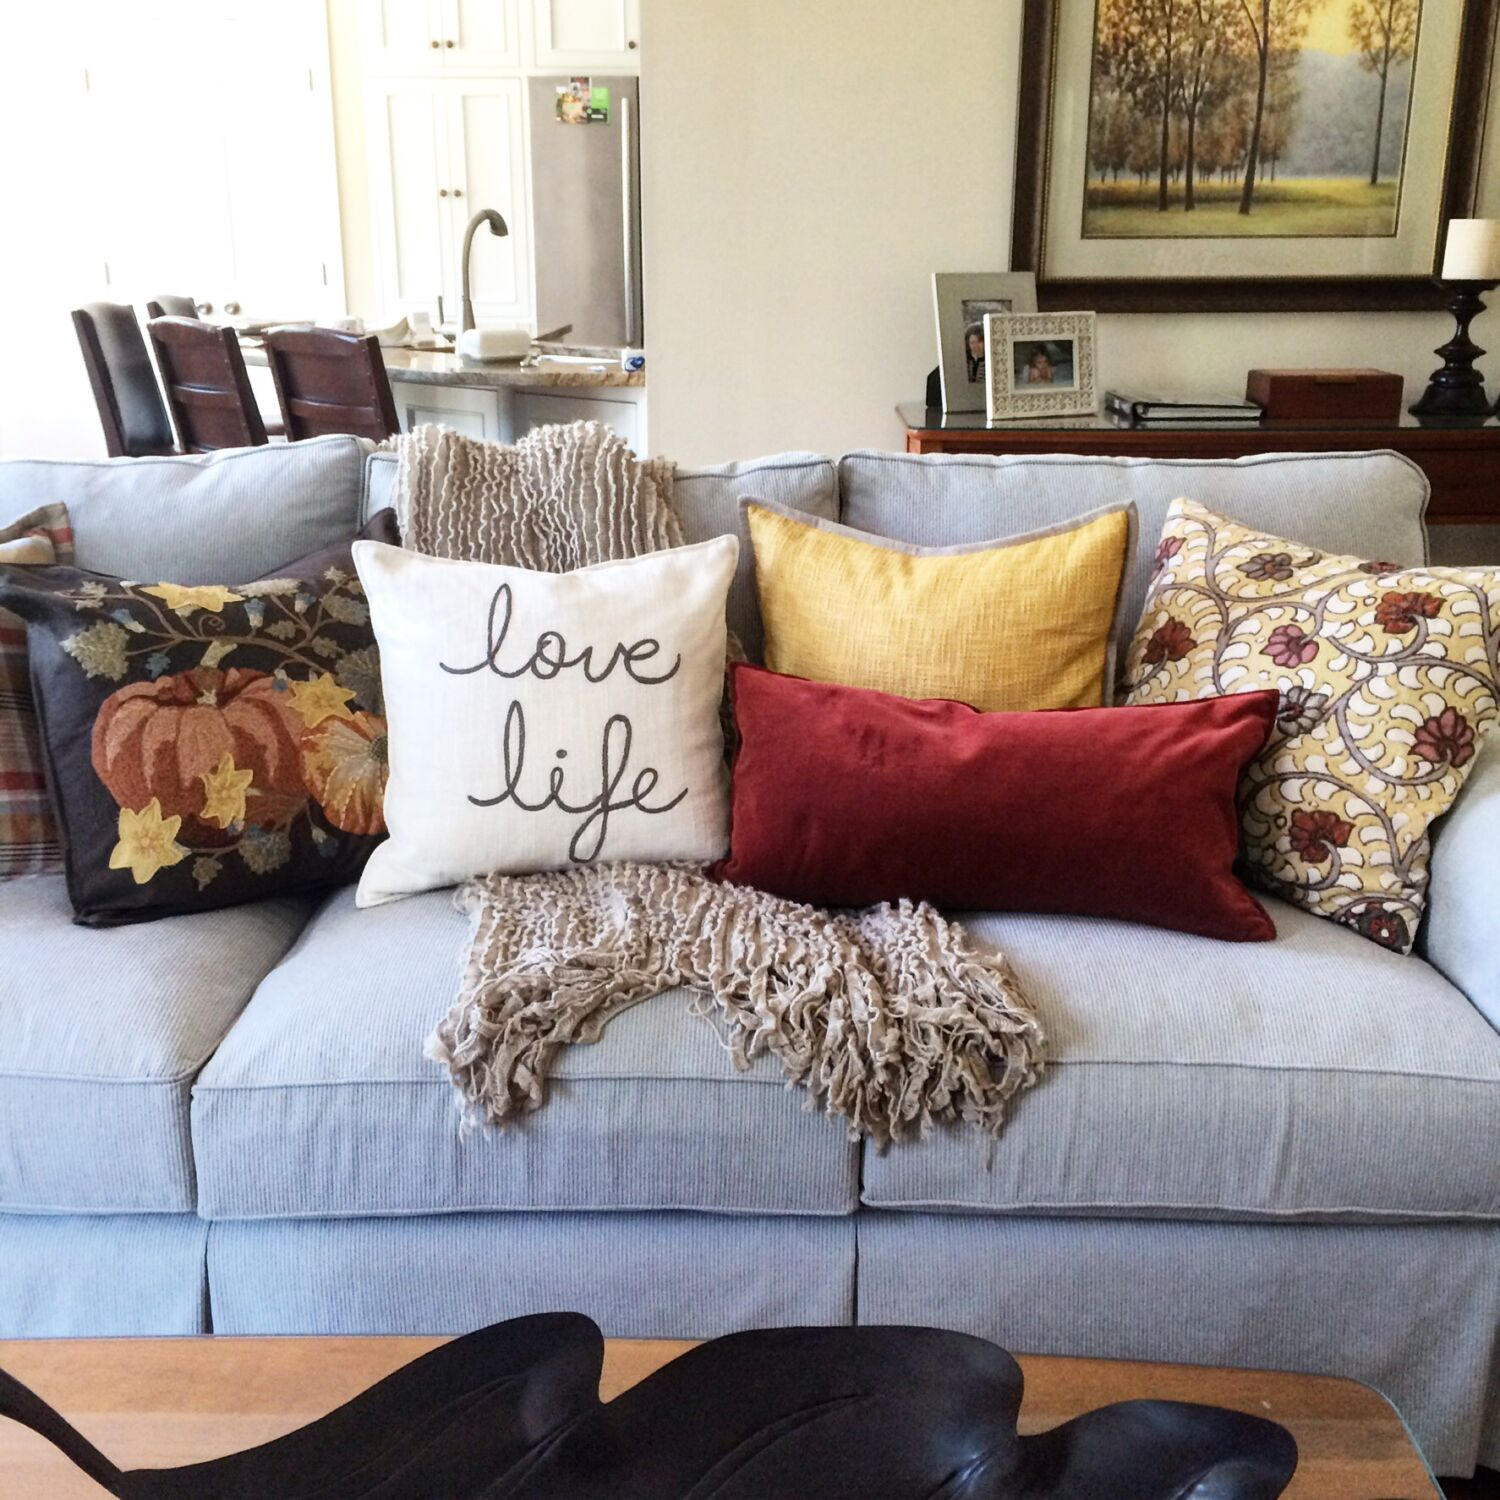 to filled olive or homes decorative solid autumn polyester it do pillows better decorating throw punch daltrey gardens how accents pillow inch yourself plain up down